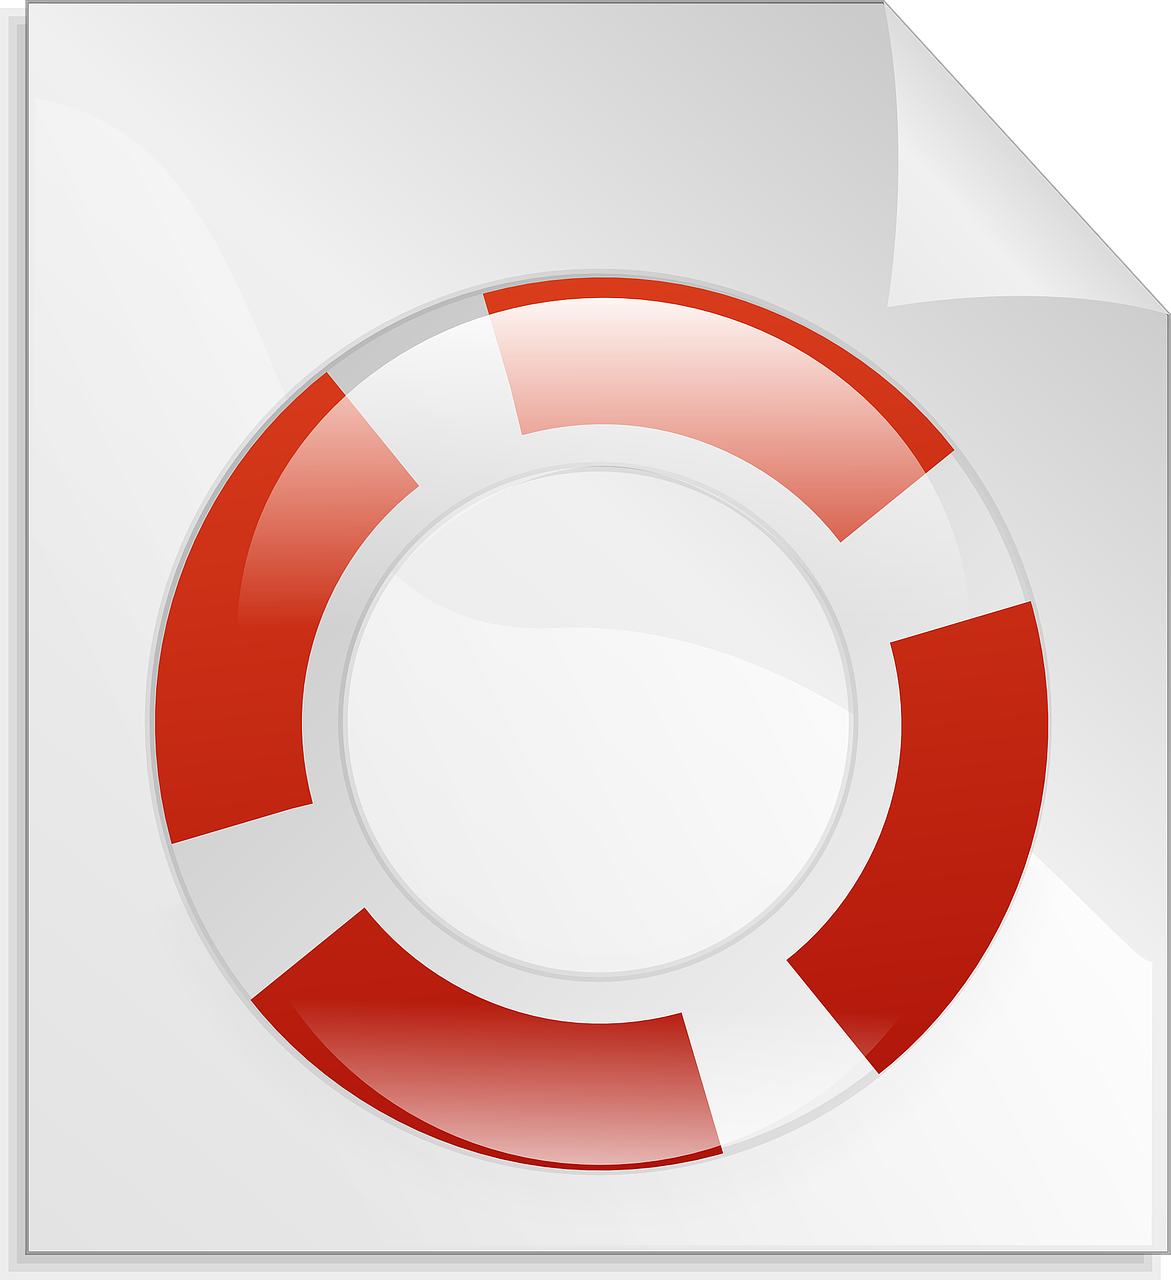 lifesaver life ring life preserver free photo